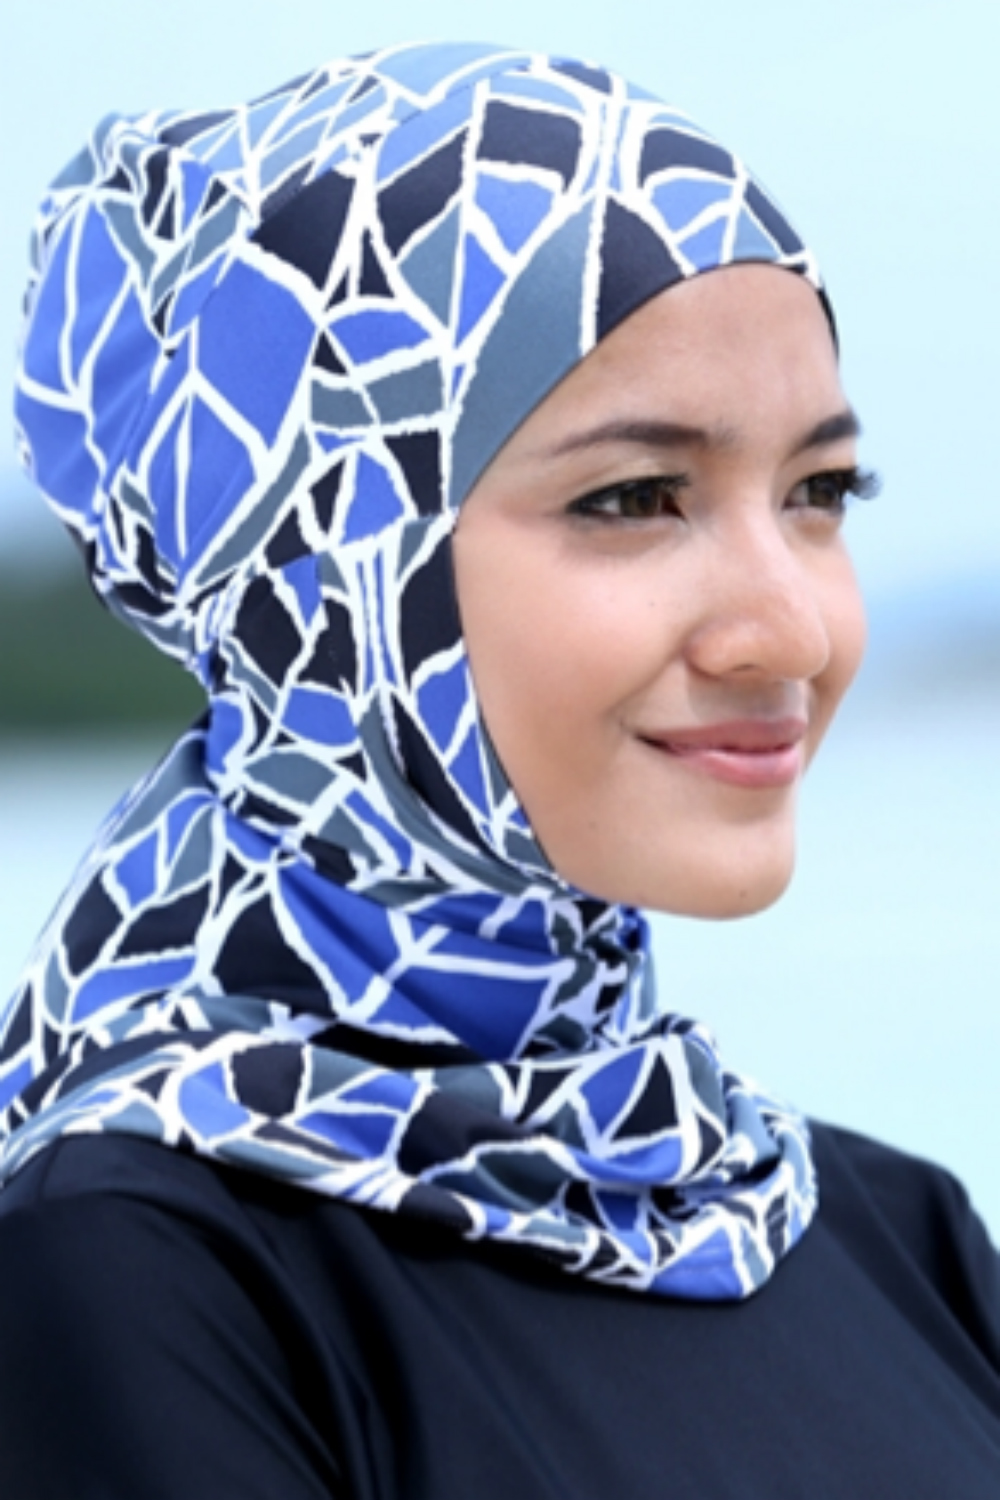 Sports Hijabs: The High Street Fashion Brand Transforming Muslim Women's Lives Sports Hijabs: The High Street Fashion Brand Transforming Muslim Women's Lives new picture